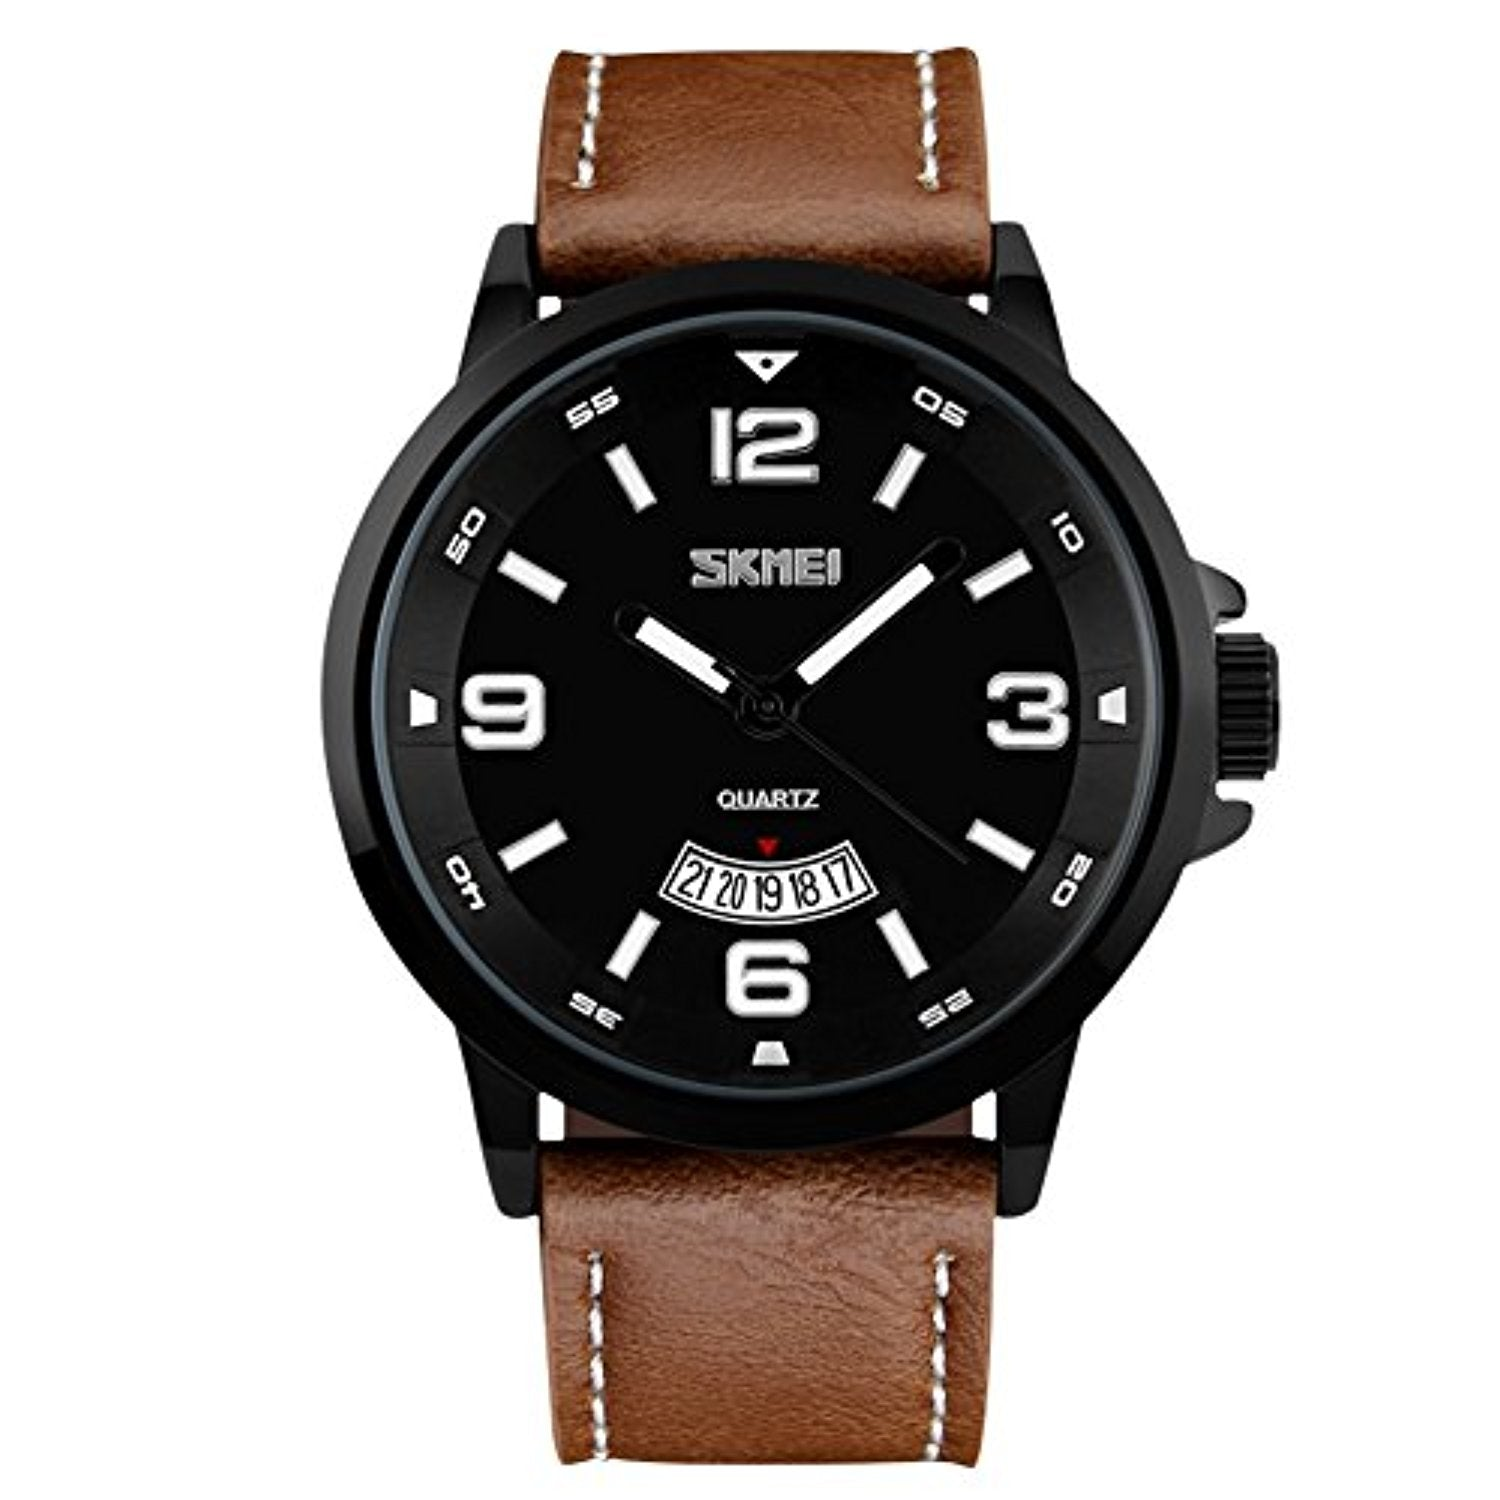 strap numeral quartz roman product wrist waterproof first from casual japanese buying new watches business benyar design band leather watch